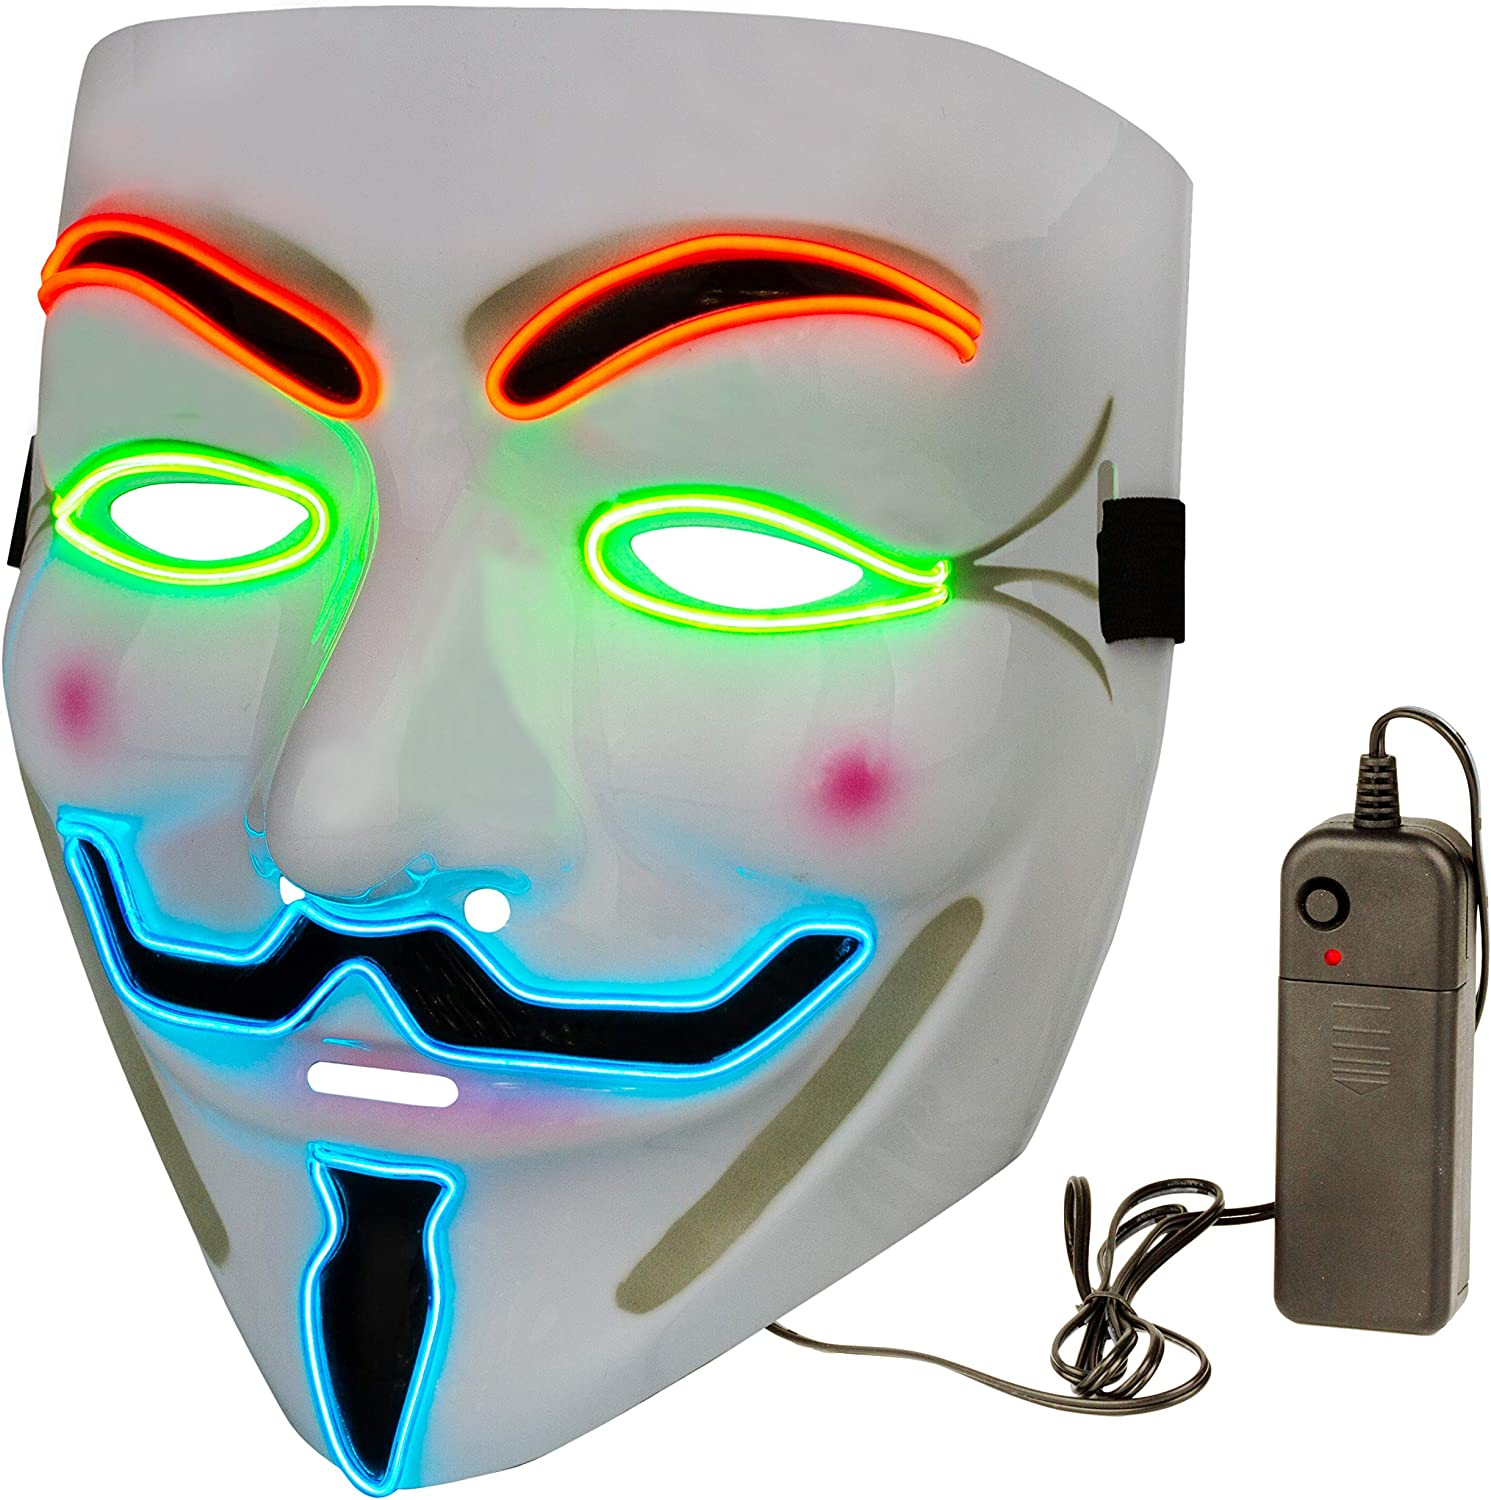 Halloween Masks LED Mask – V for Vendetta Mask Anonymous Guy Light Up Hacker Mask White